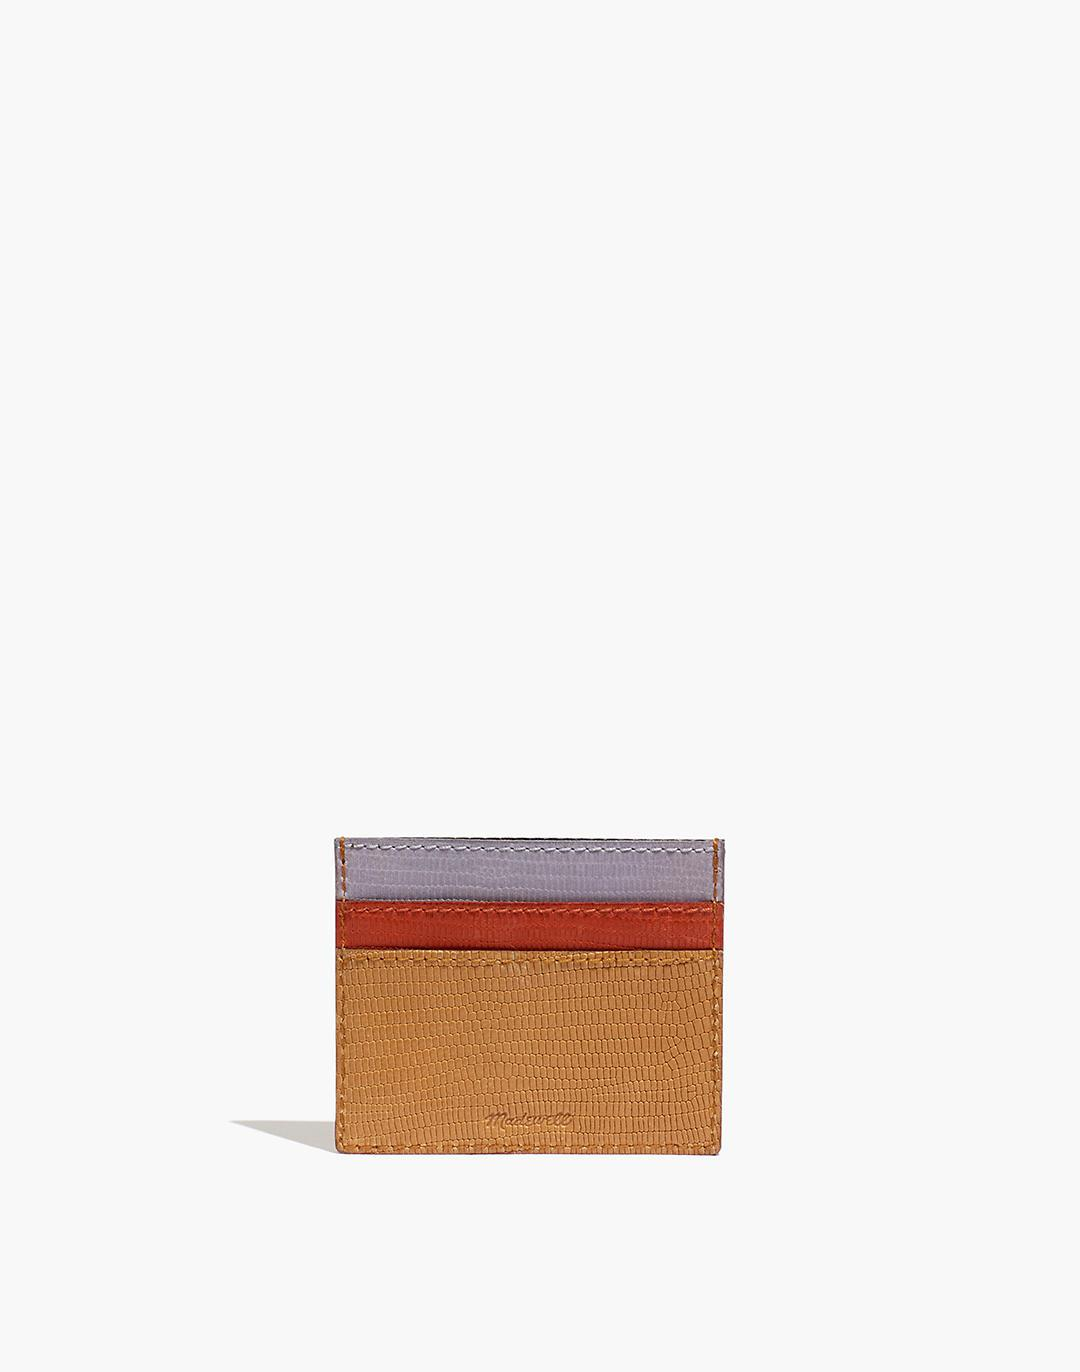 The Leather Card Case: Colorblock Lizard Embossed Edition